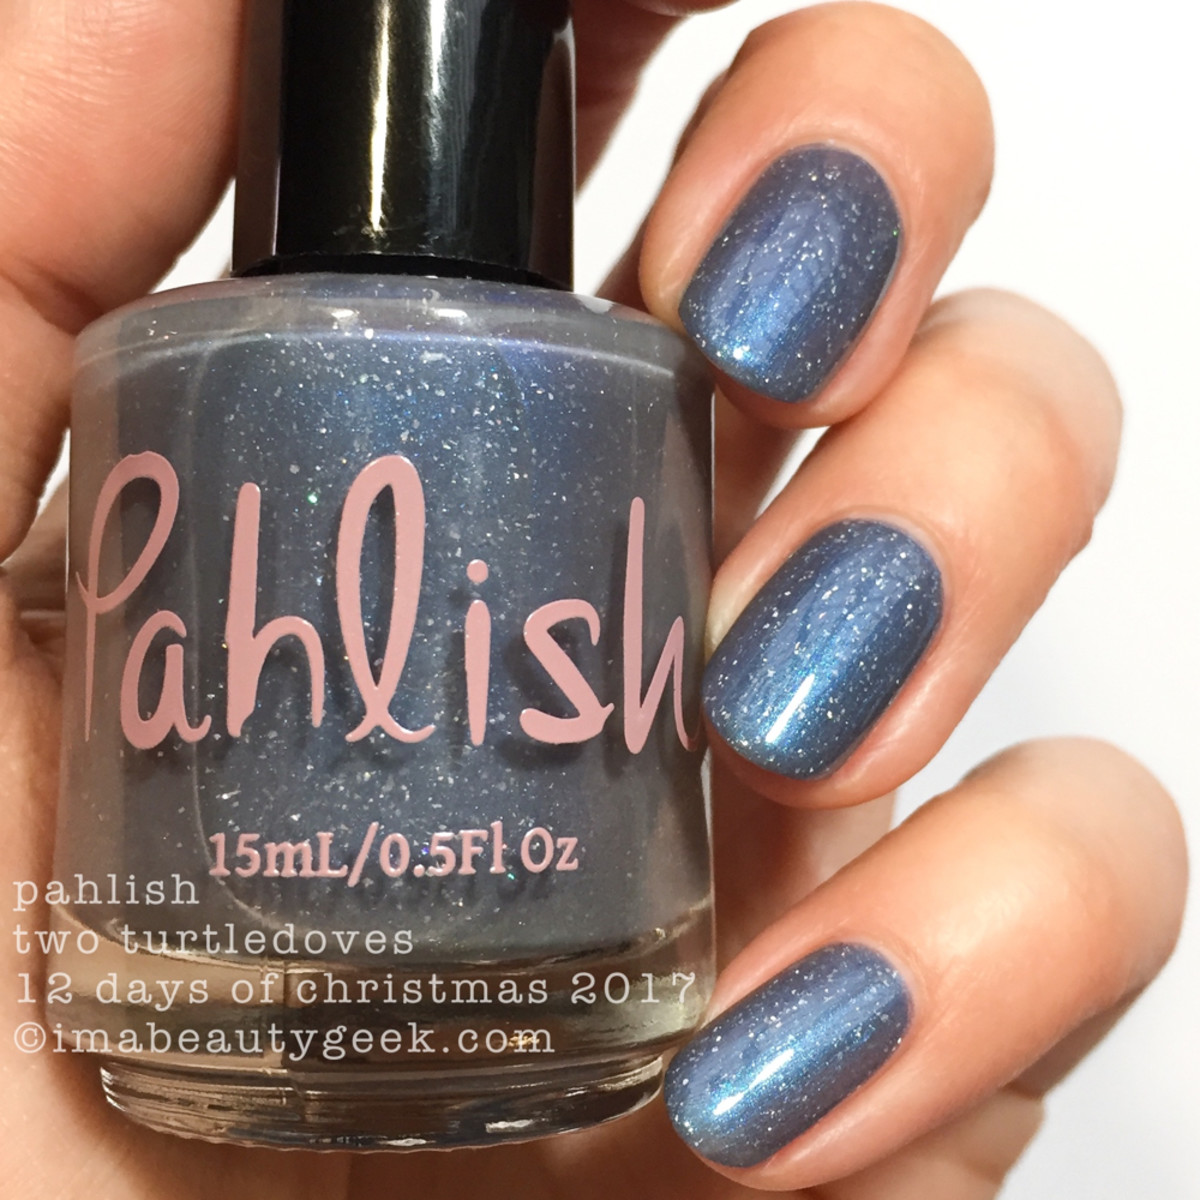 Pahlish Two Turtledoves - Pahlish 12 Days of Christmas 2017 2